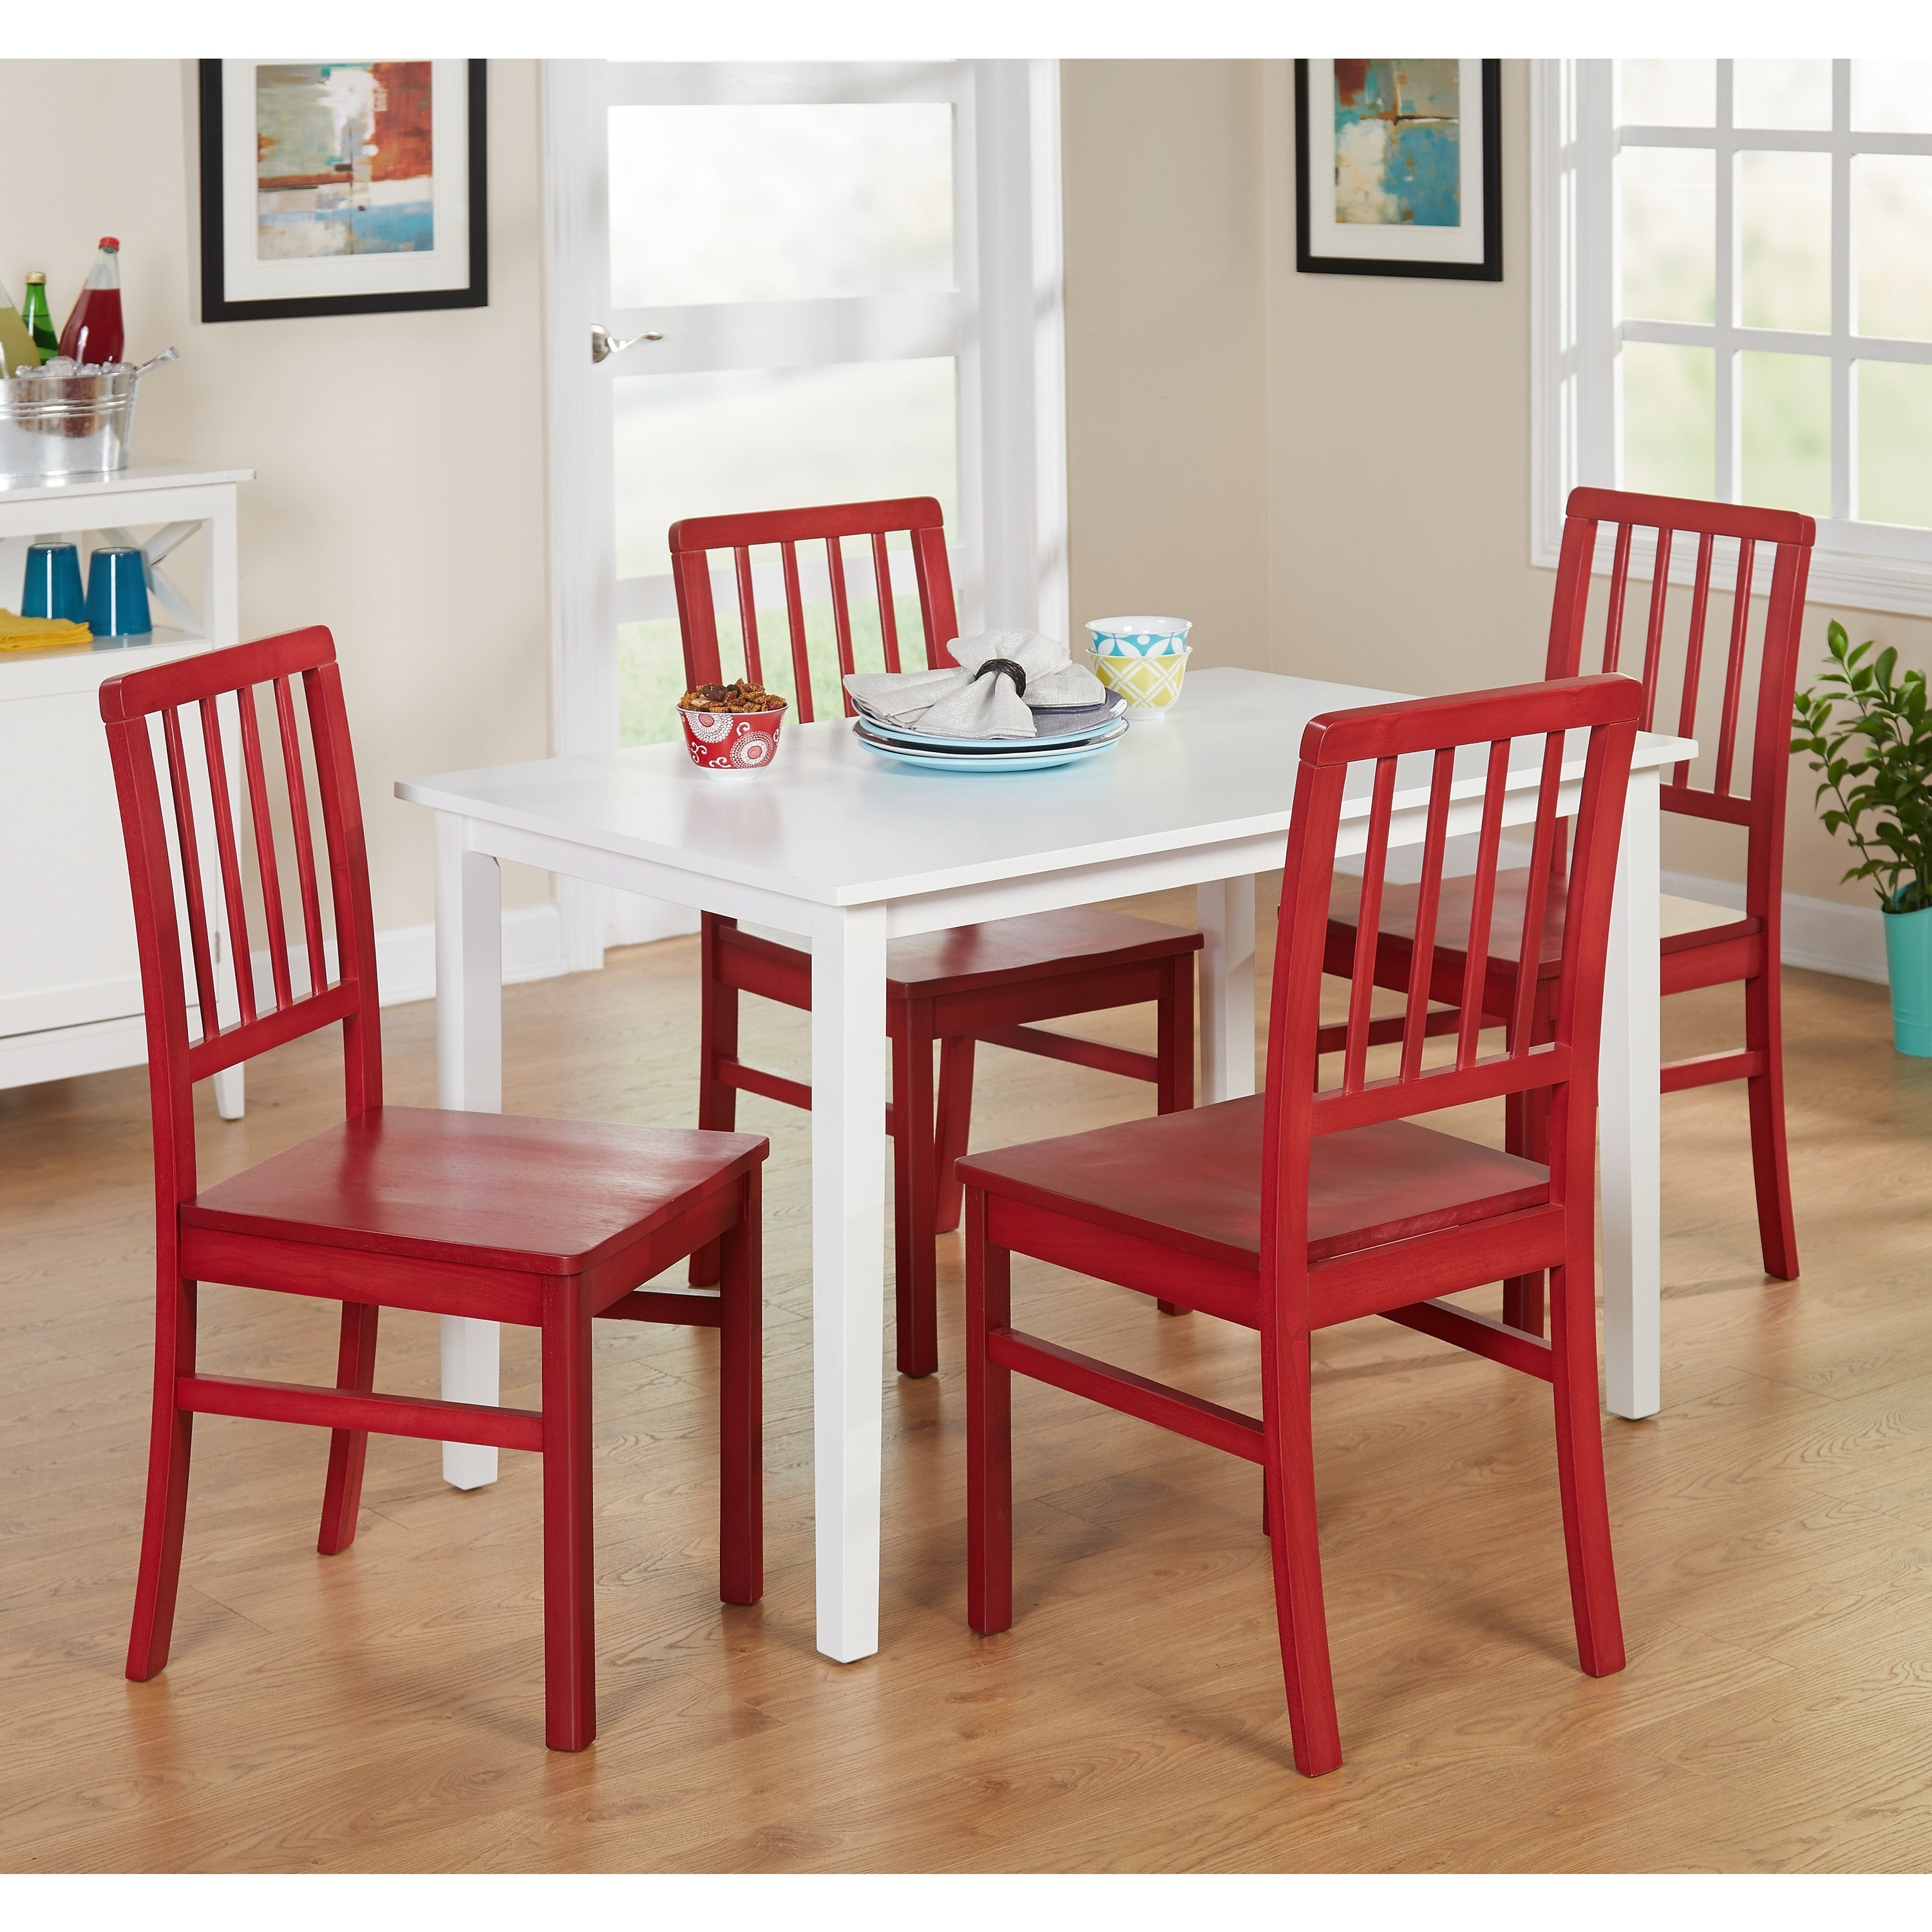 Red Dining Room Furniture: Dining Room Ideas